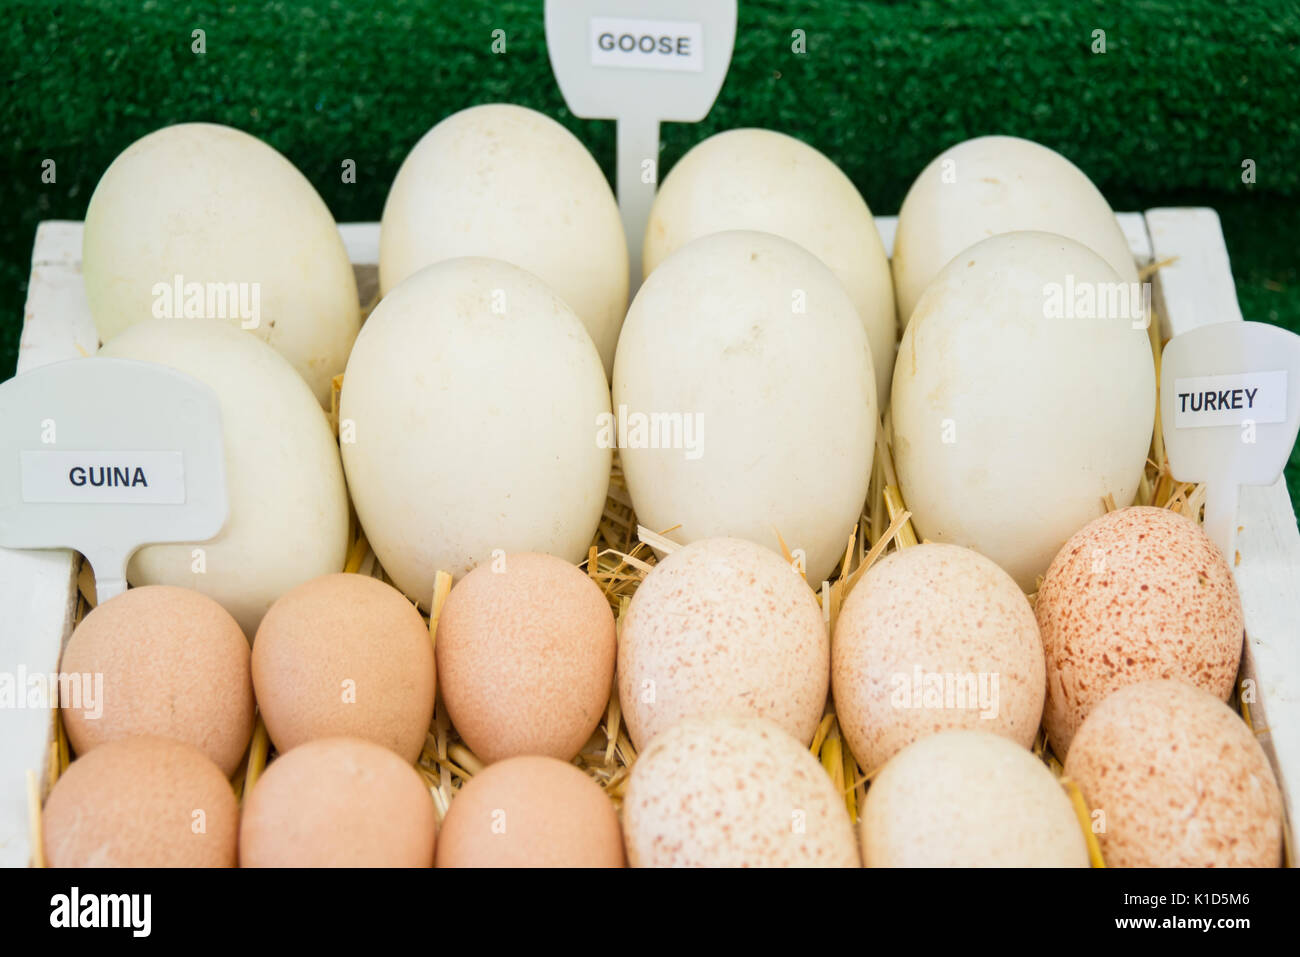 Guina, Goose, and Turkey Eggs Labeled - Stock Image